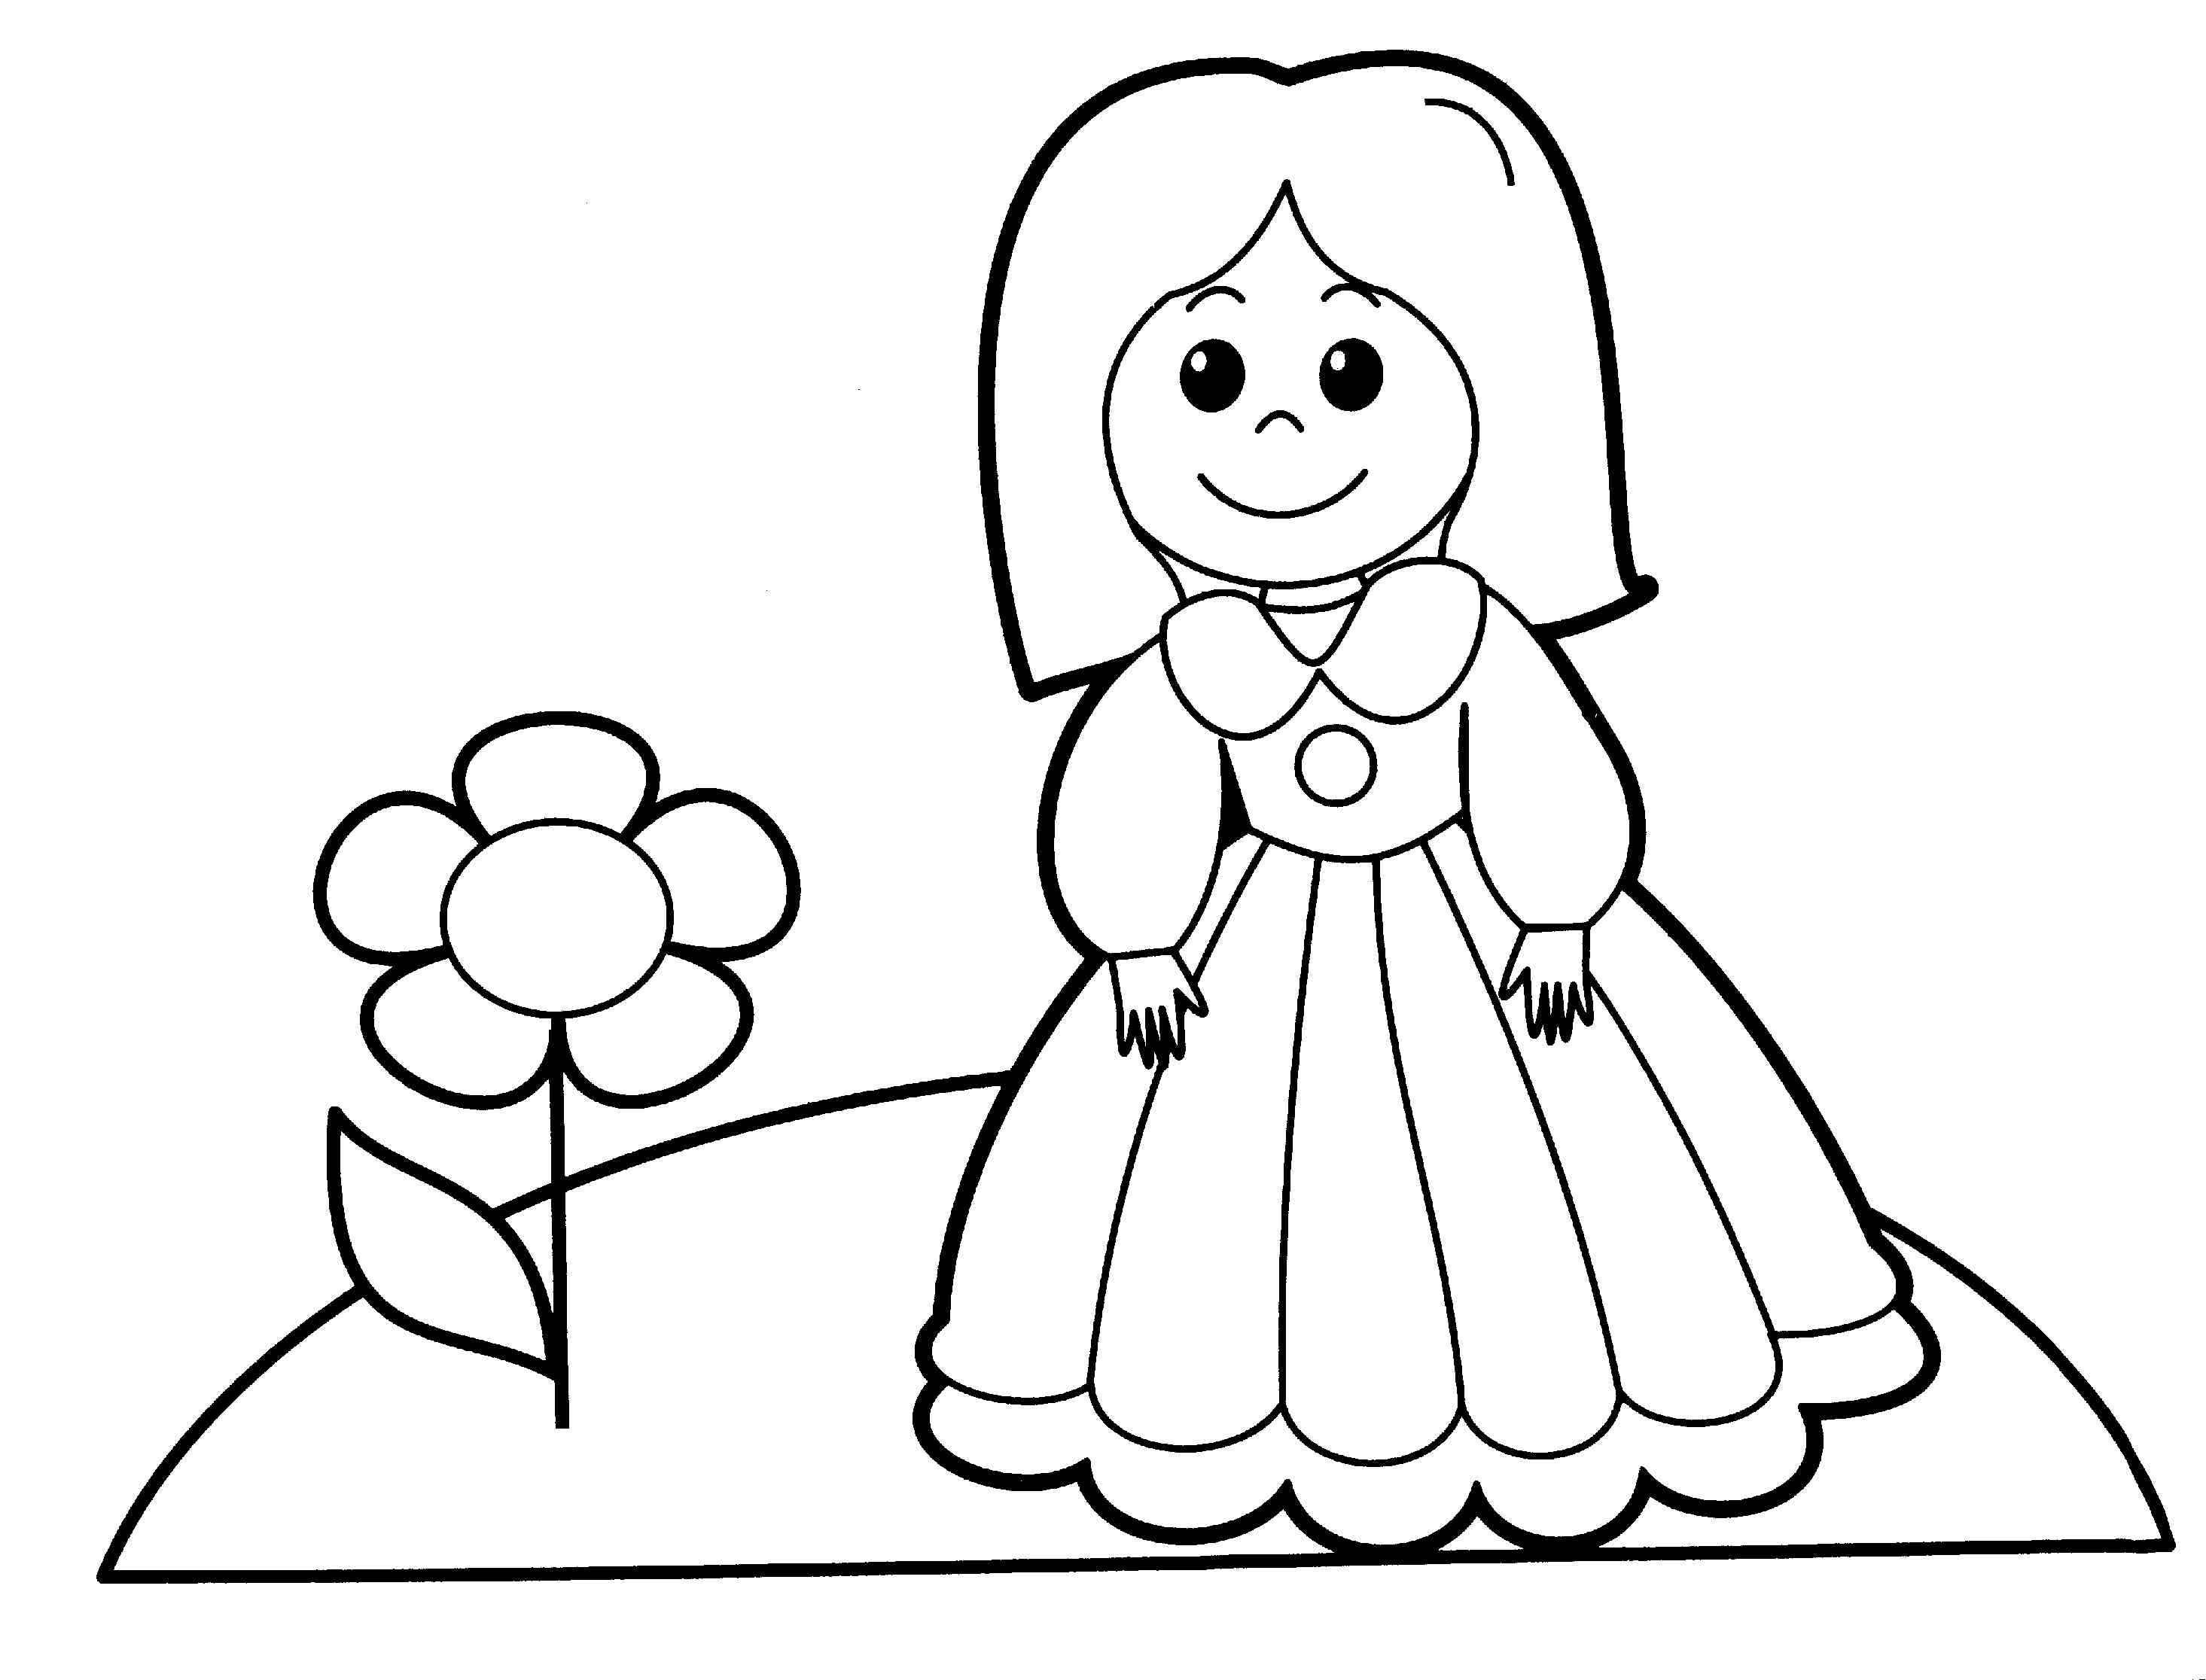 - Free Printable Baby Doll Coloring Pages - Coloring Home